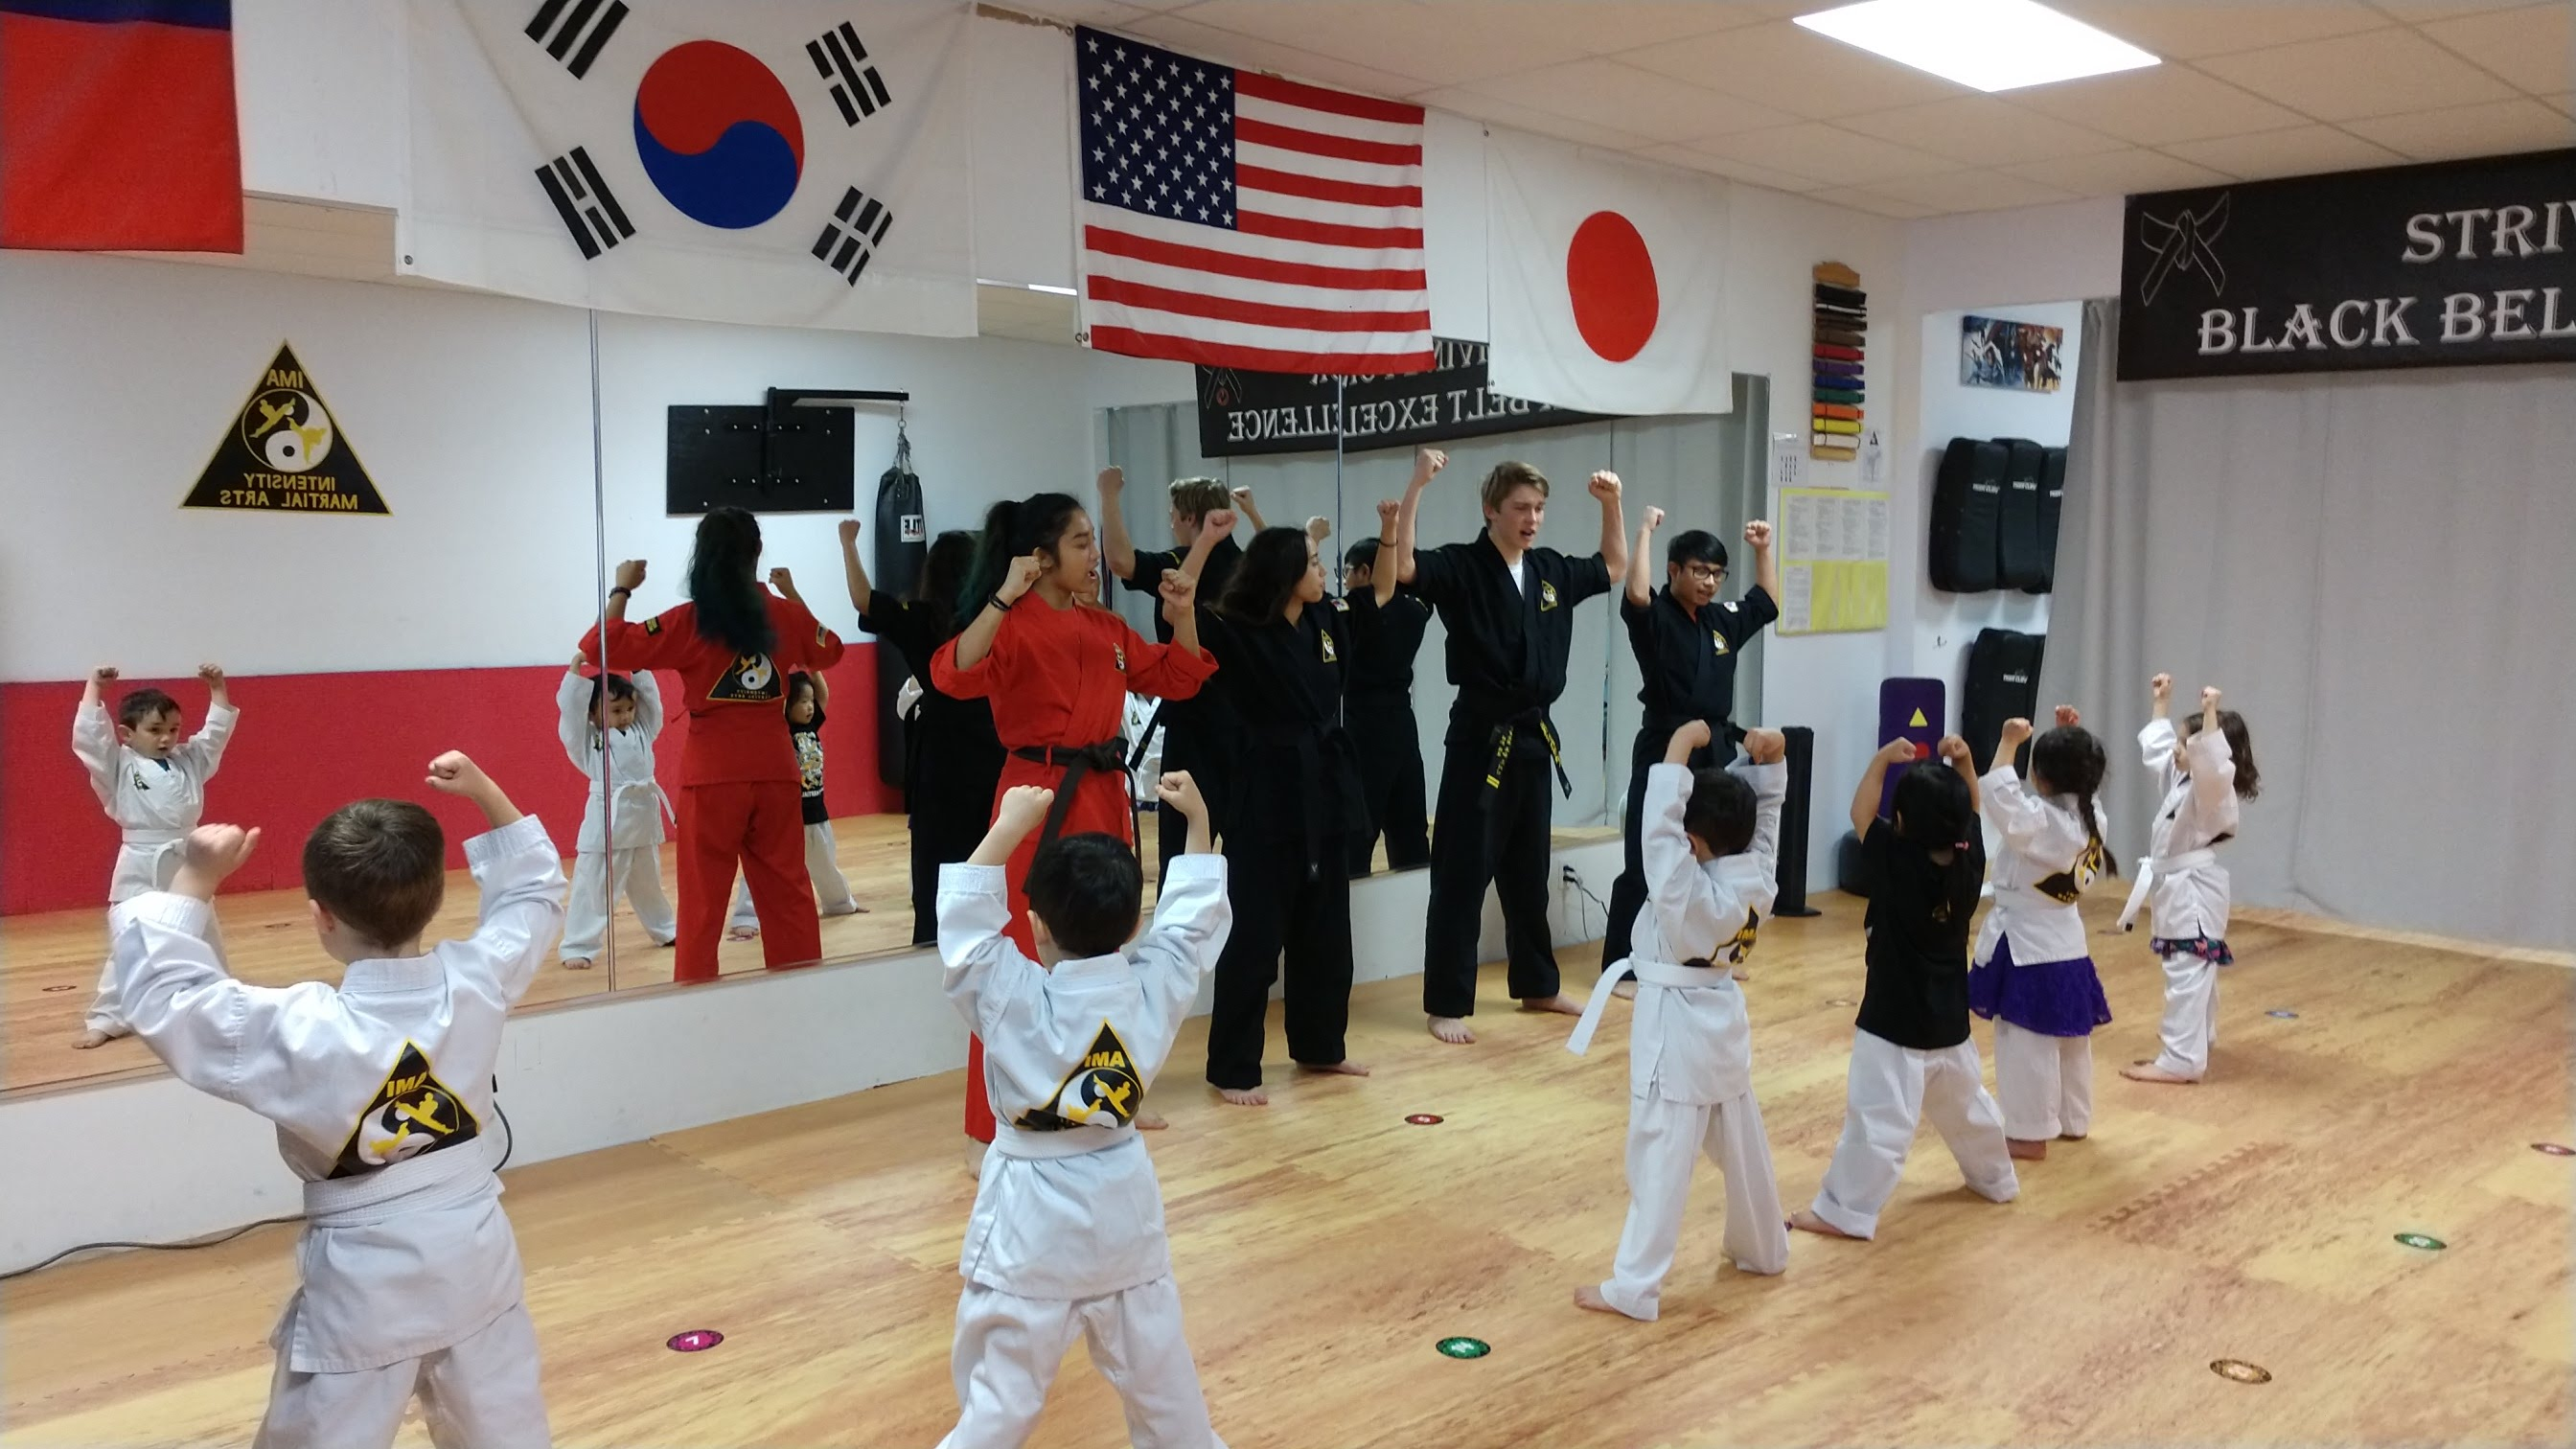 IMA's AMAZING YOUTH MARTIAL ARTS